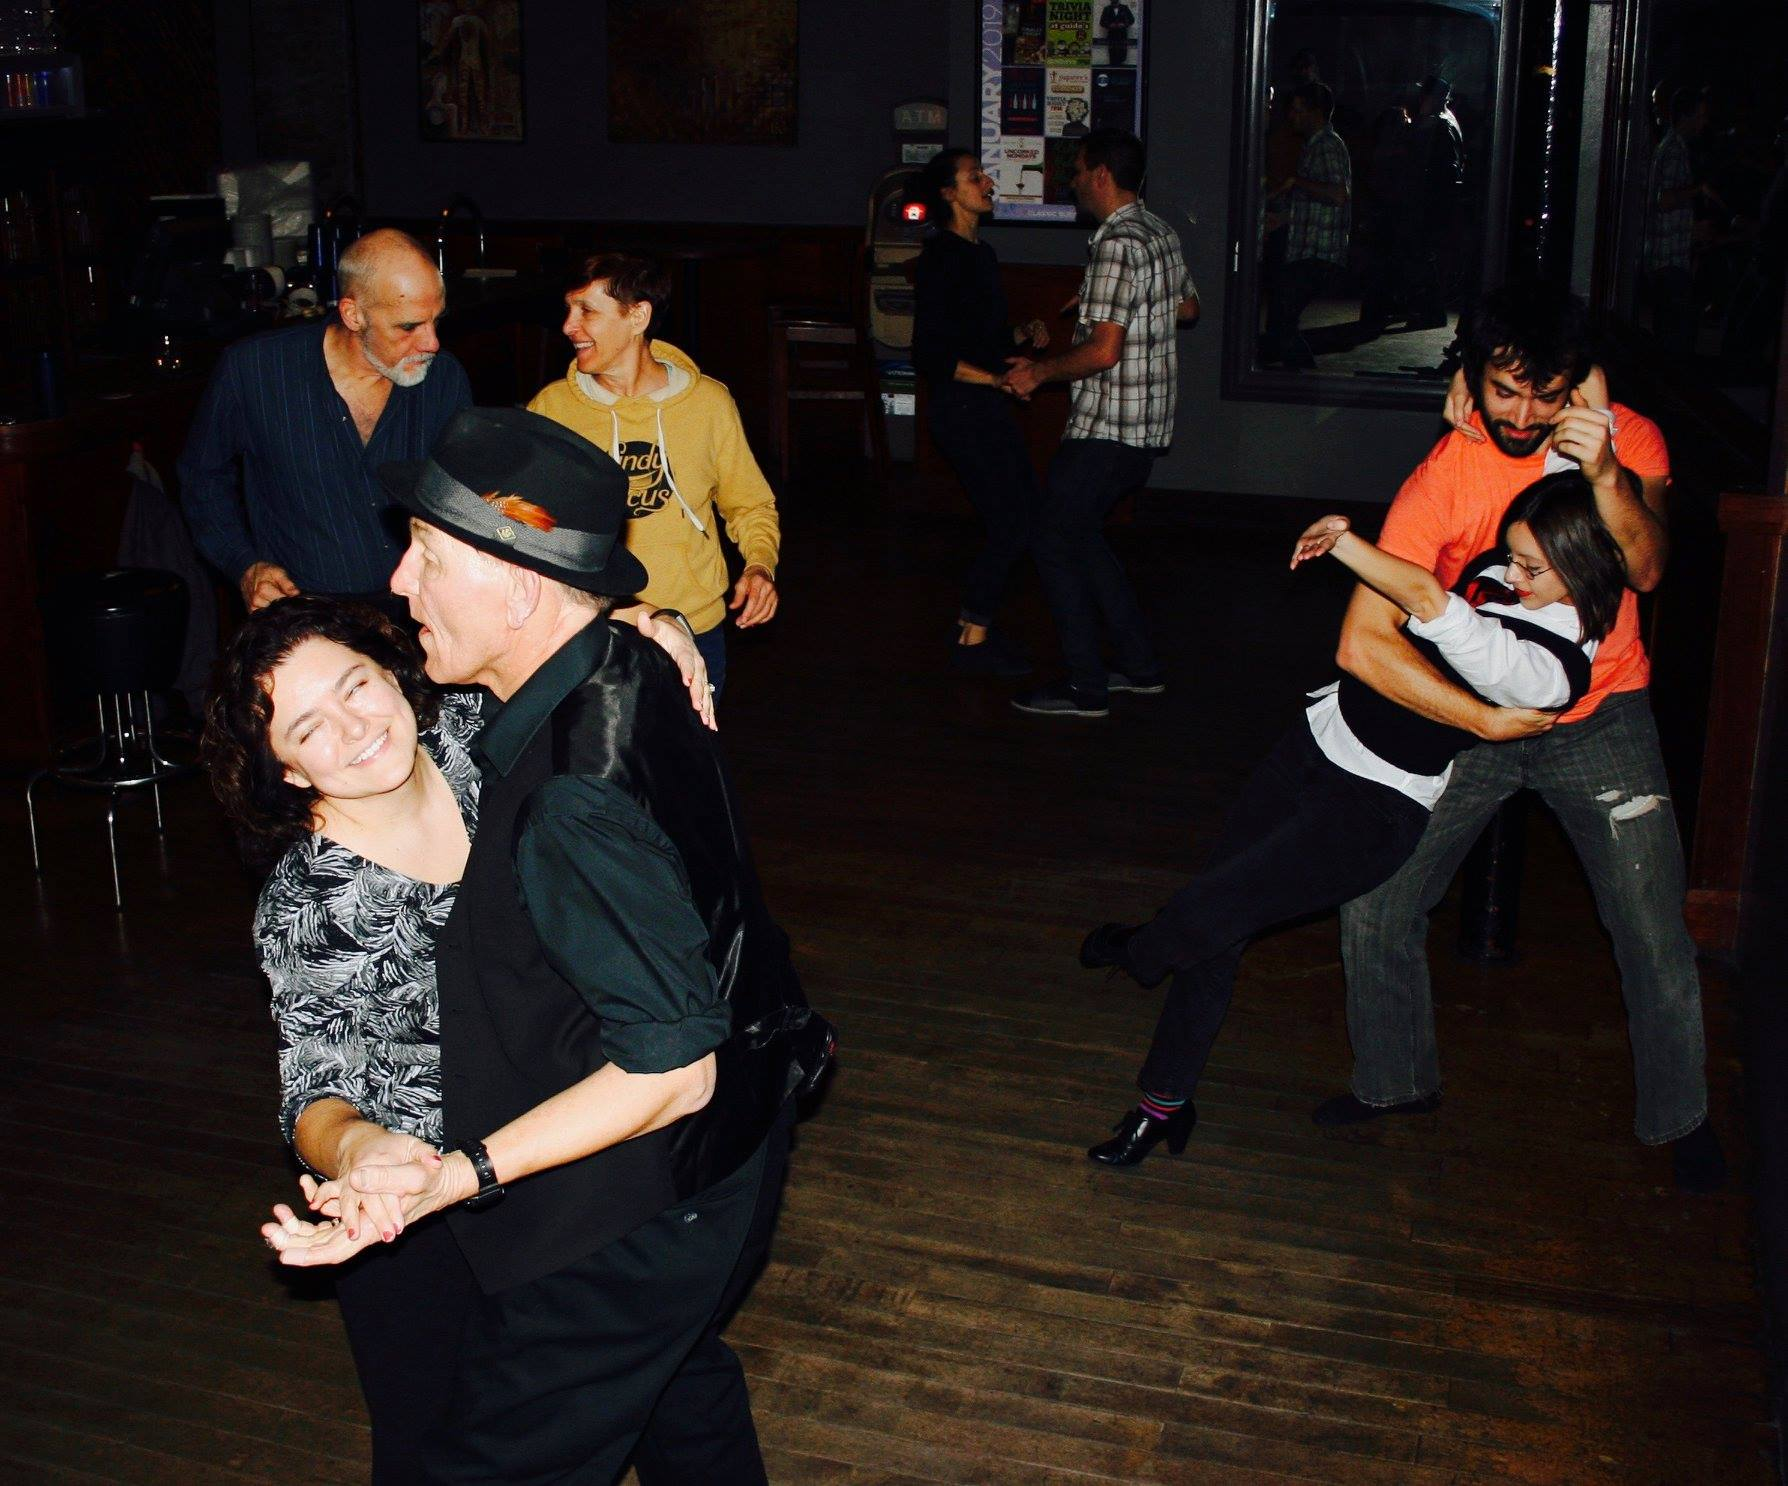 bluesCENTRAL Central Illinois Blues Dancing Community